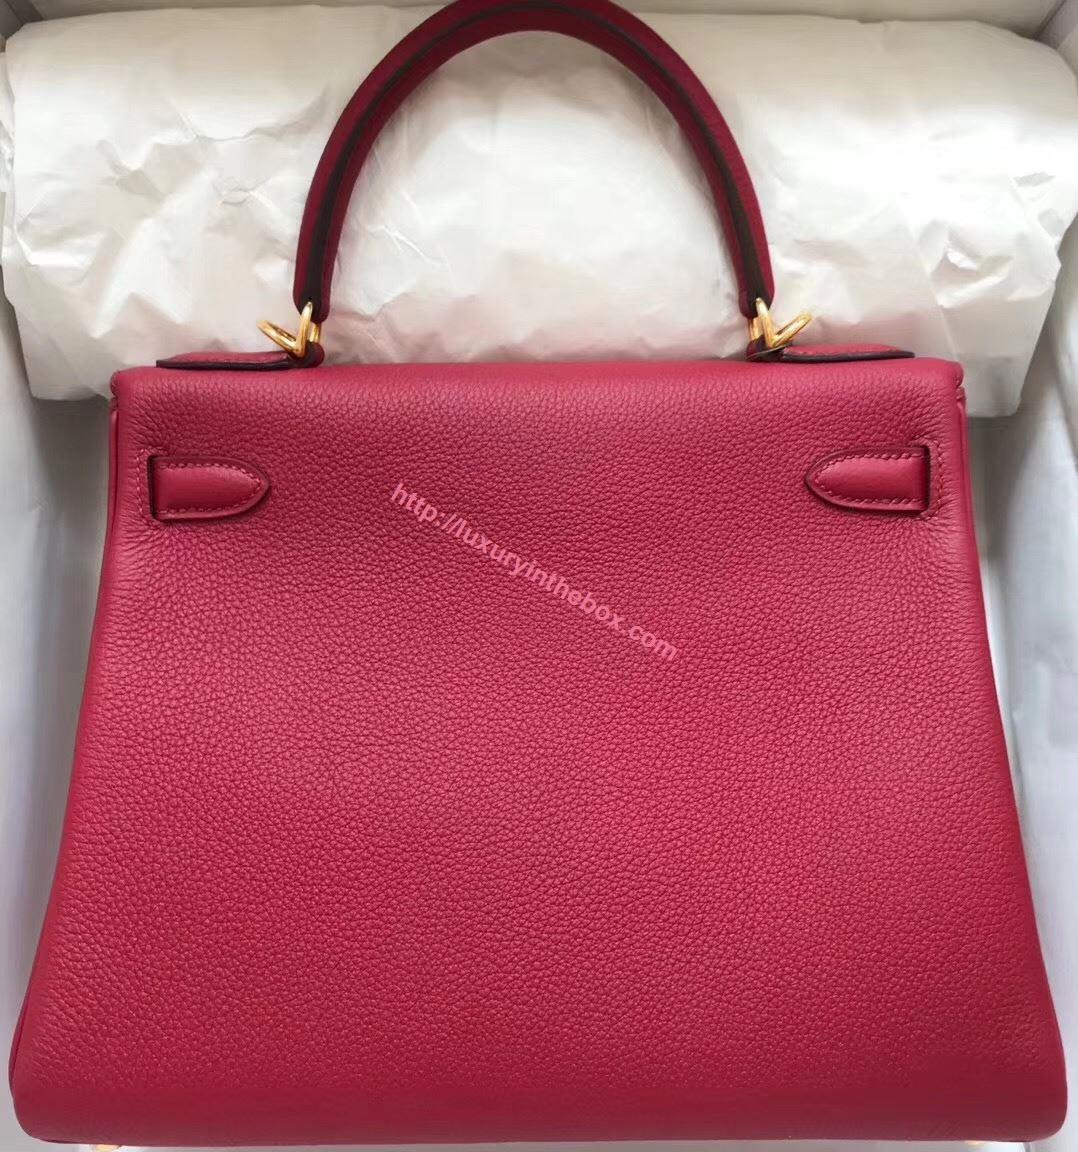 Picture of Hermes Kelly 28cm Epsom Leather Tote Bag Garnet Gold